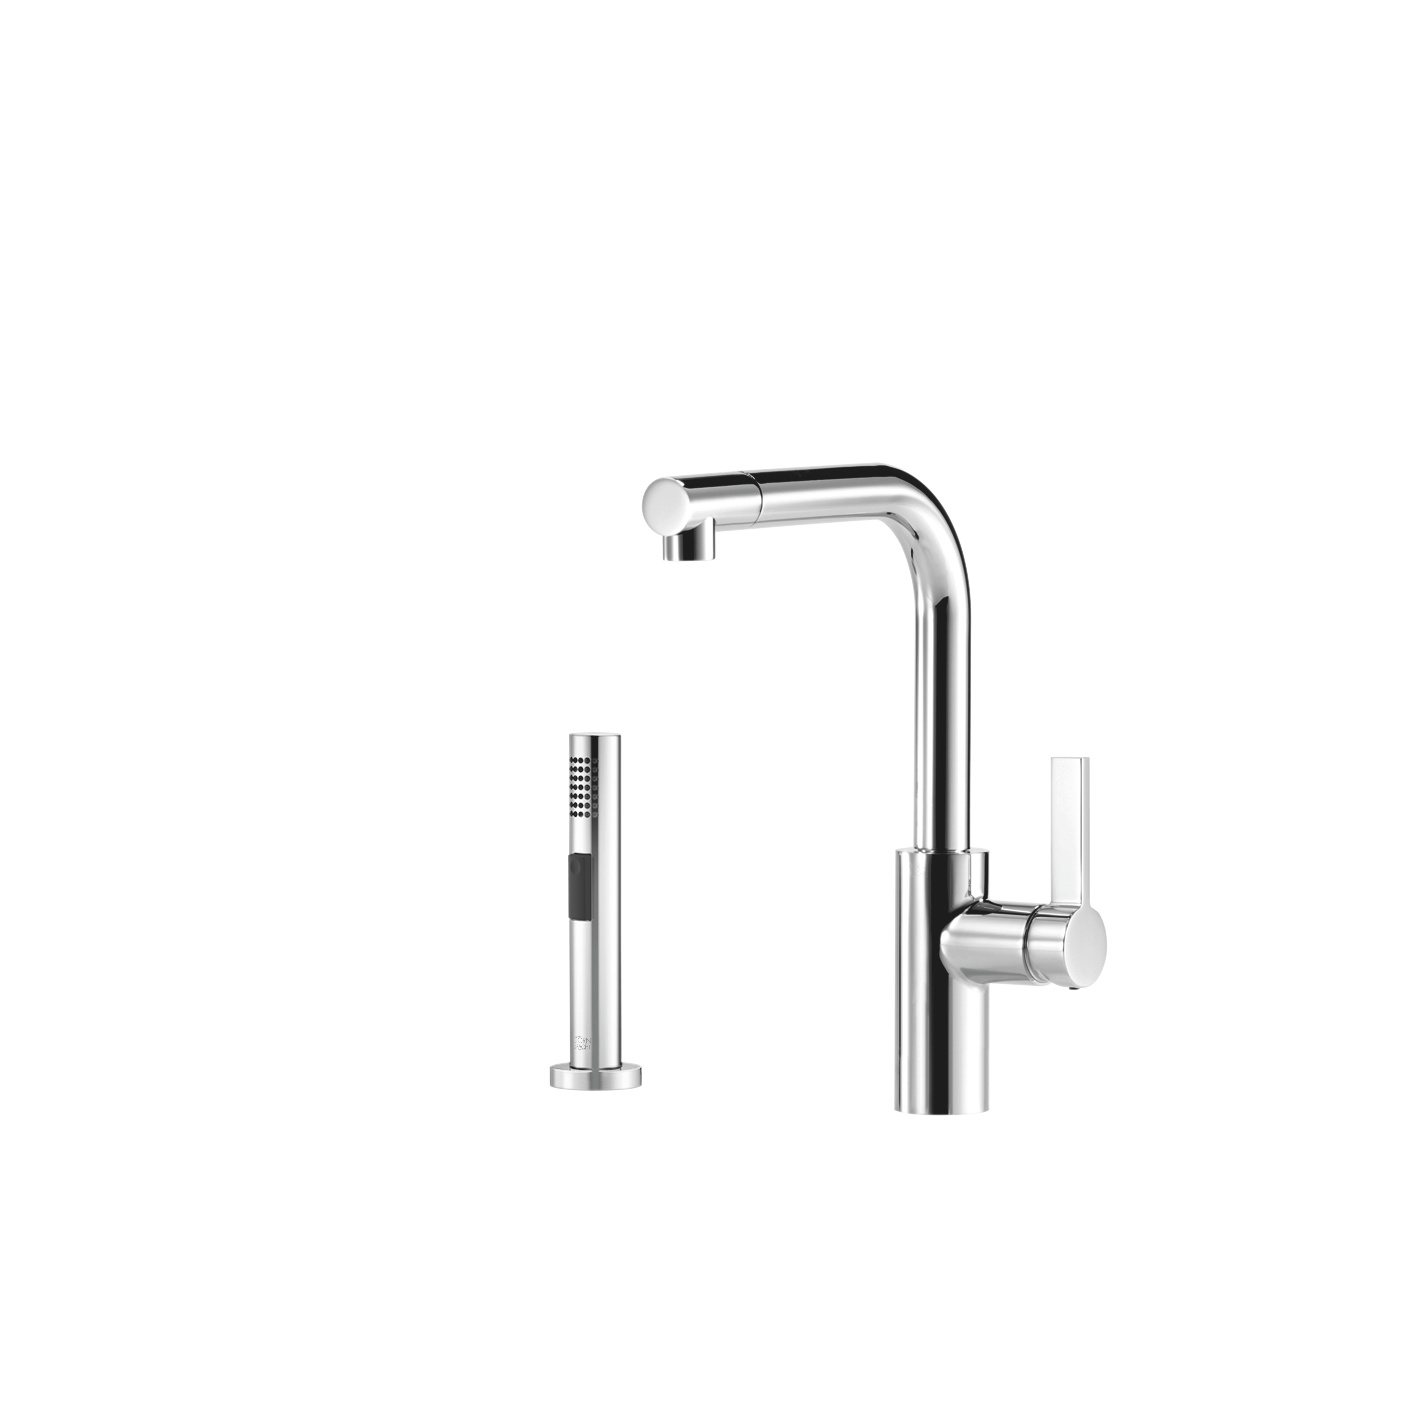 Single-lever mixer with rinsing spray set - platinum matt